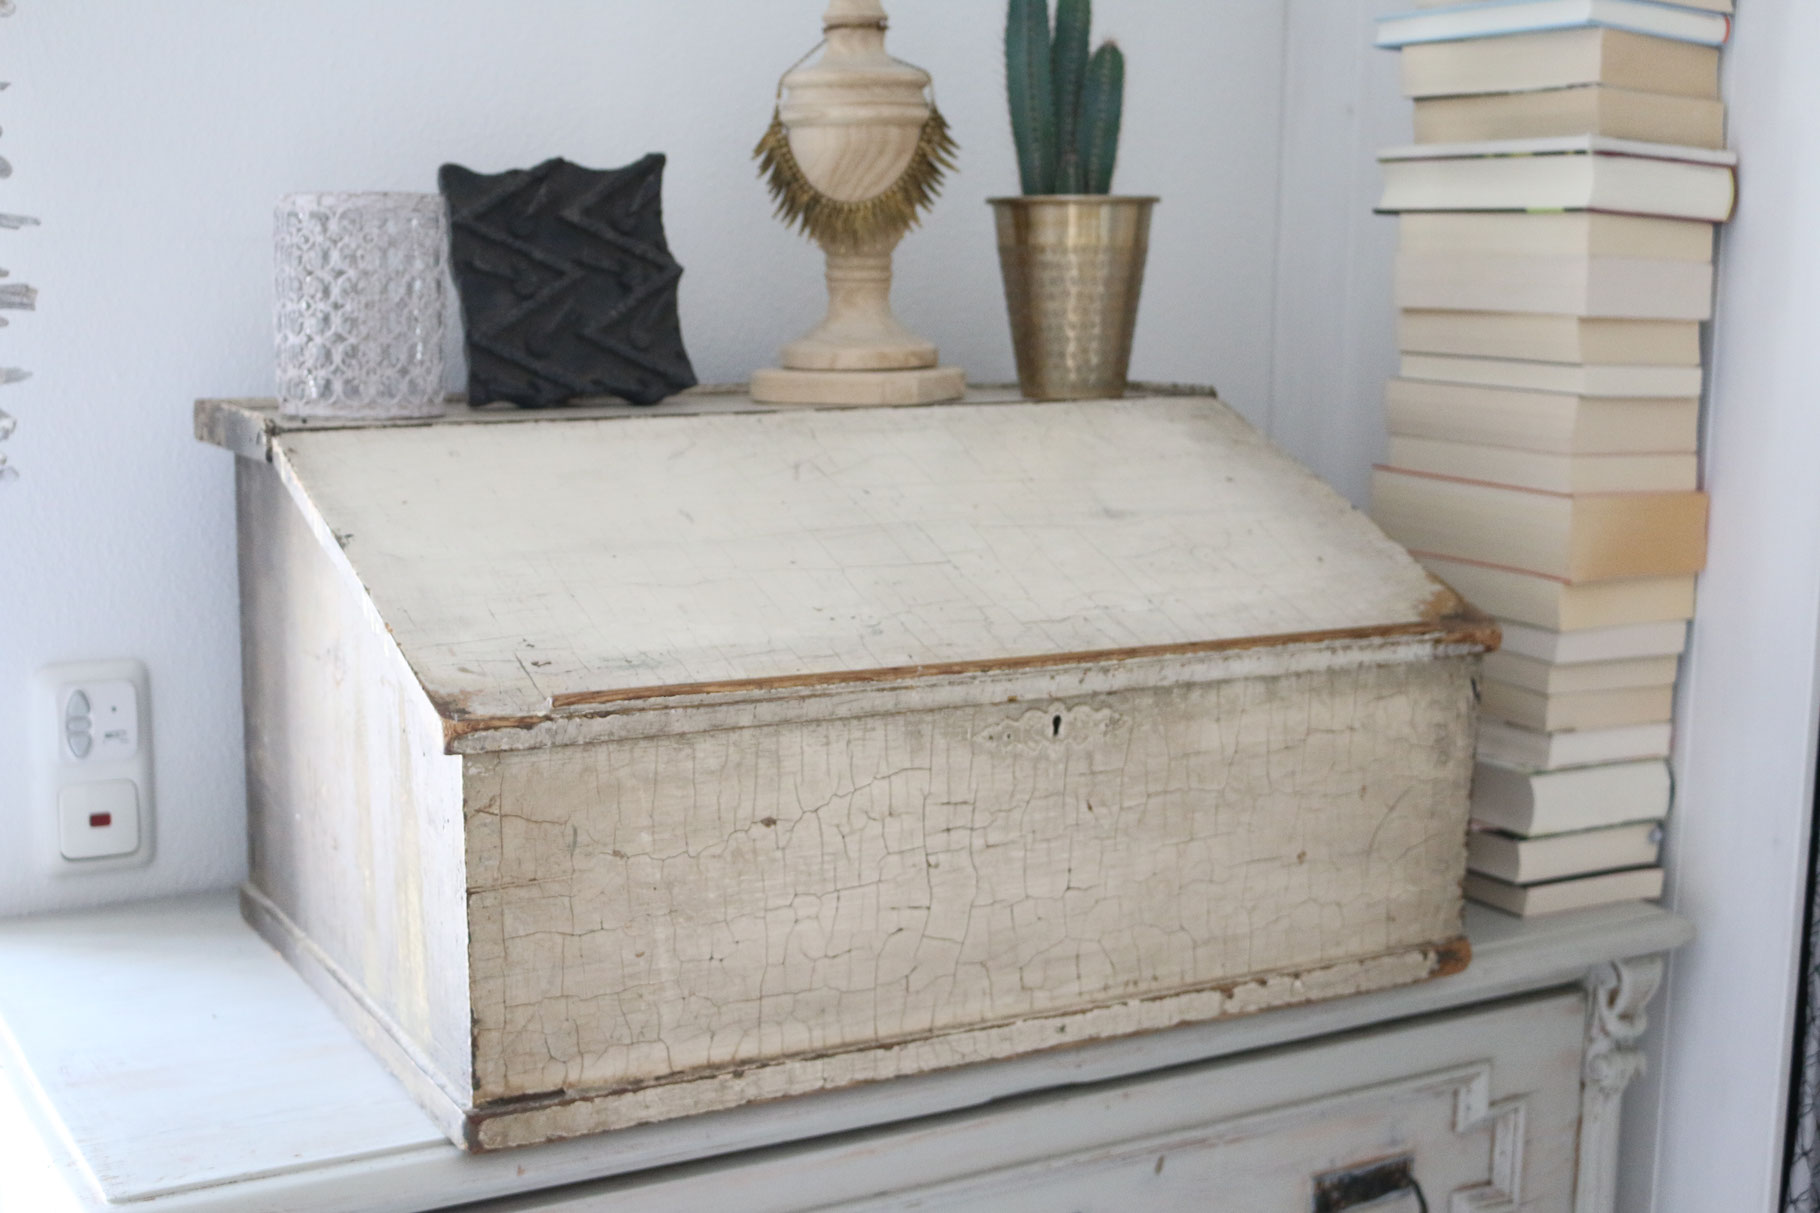 Vintage & Shabby chic - Qunst & Qrempel: Shabby chic Geschenkideen ...